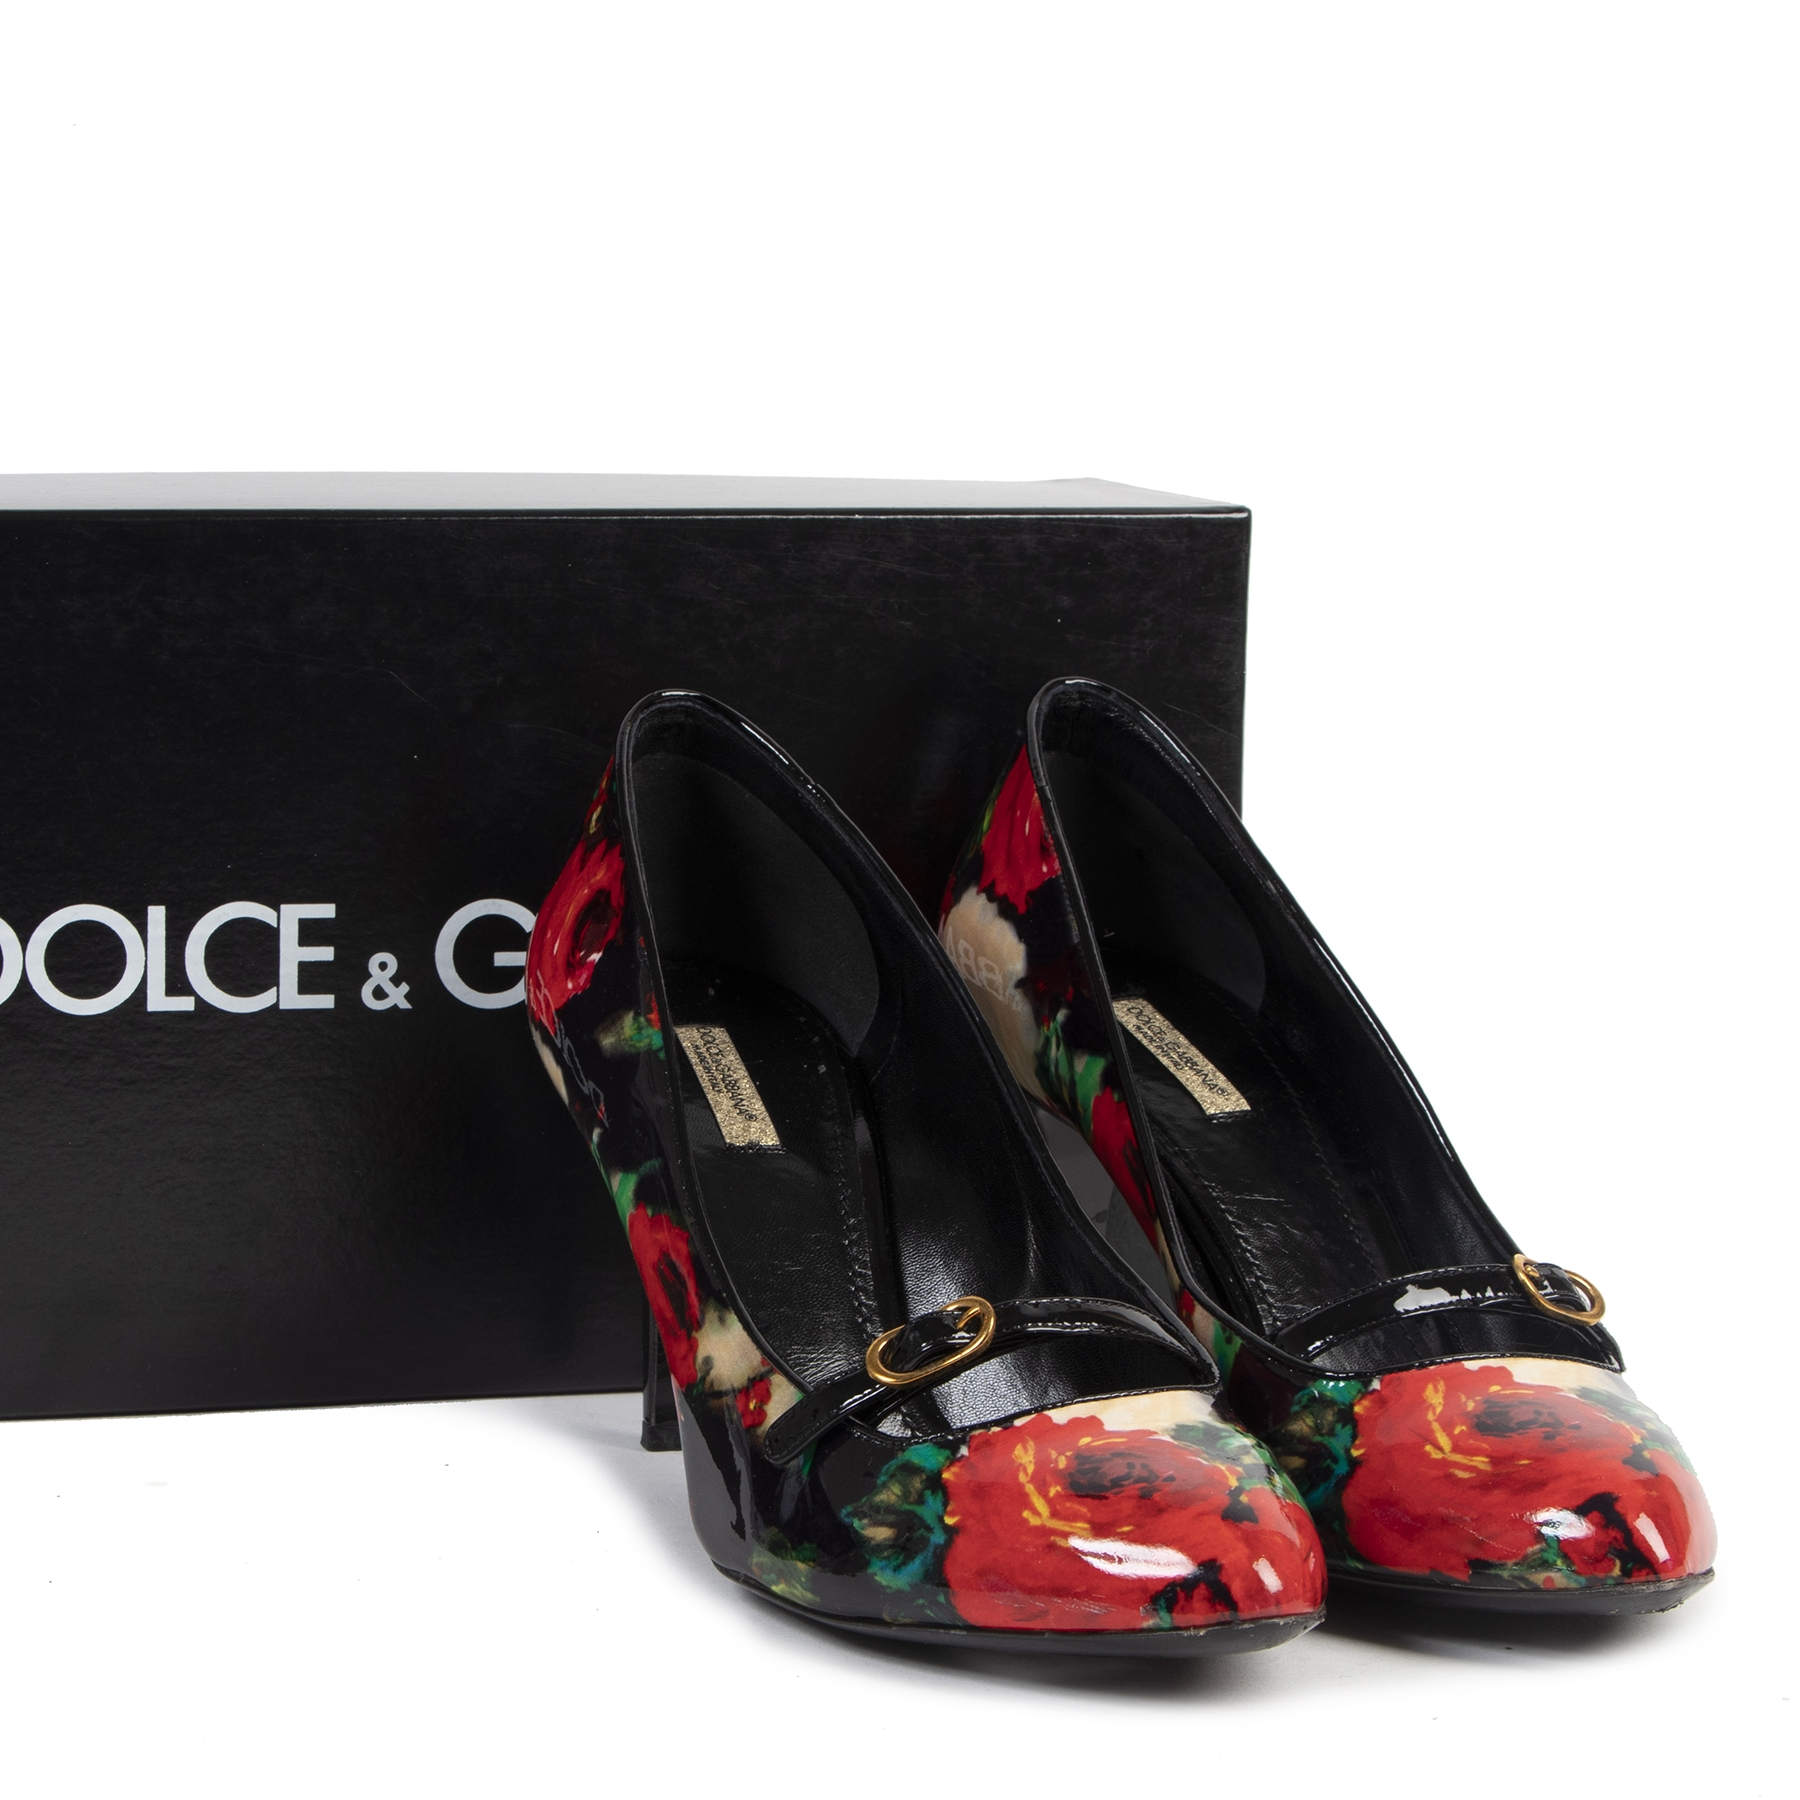 Authentic secondhand Dolce & Gabbana Floral Patent Leather Pumps - Size 41 designer shoes luxury vintage webshop fashion safe secure online shopping